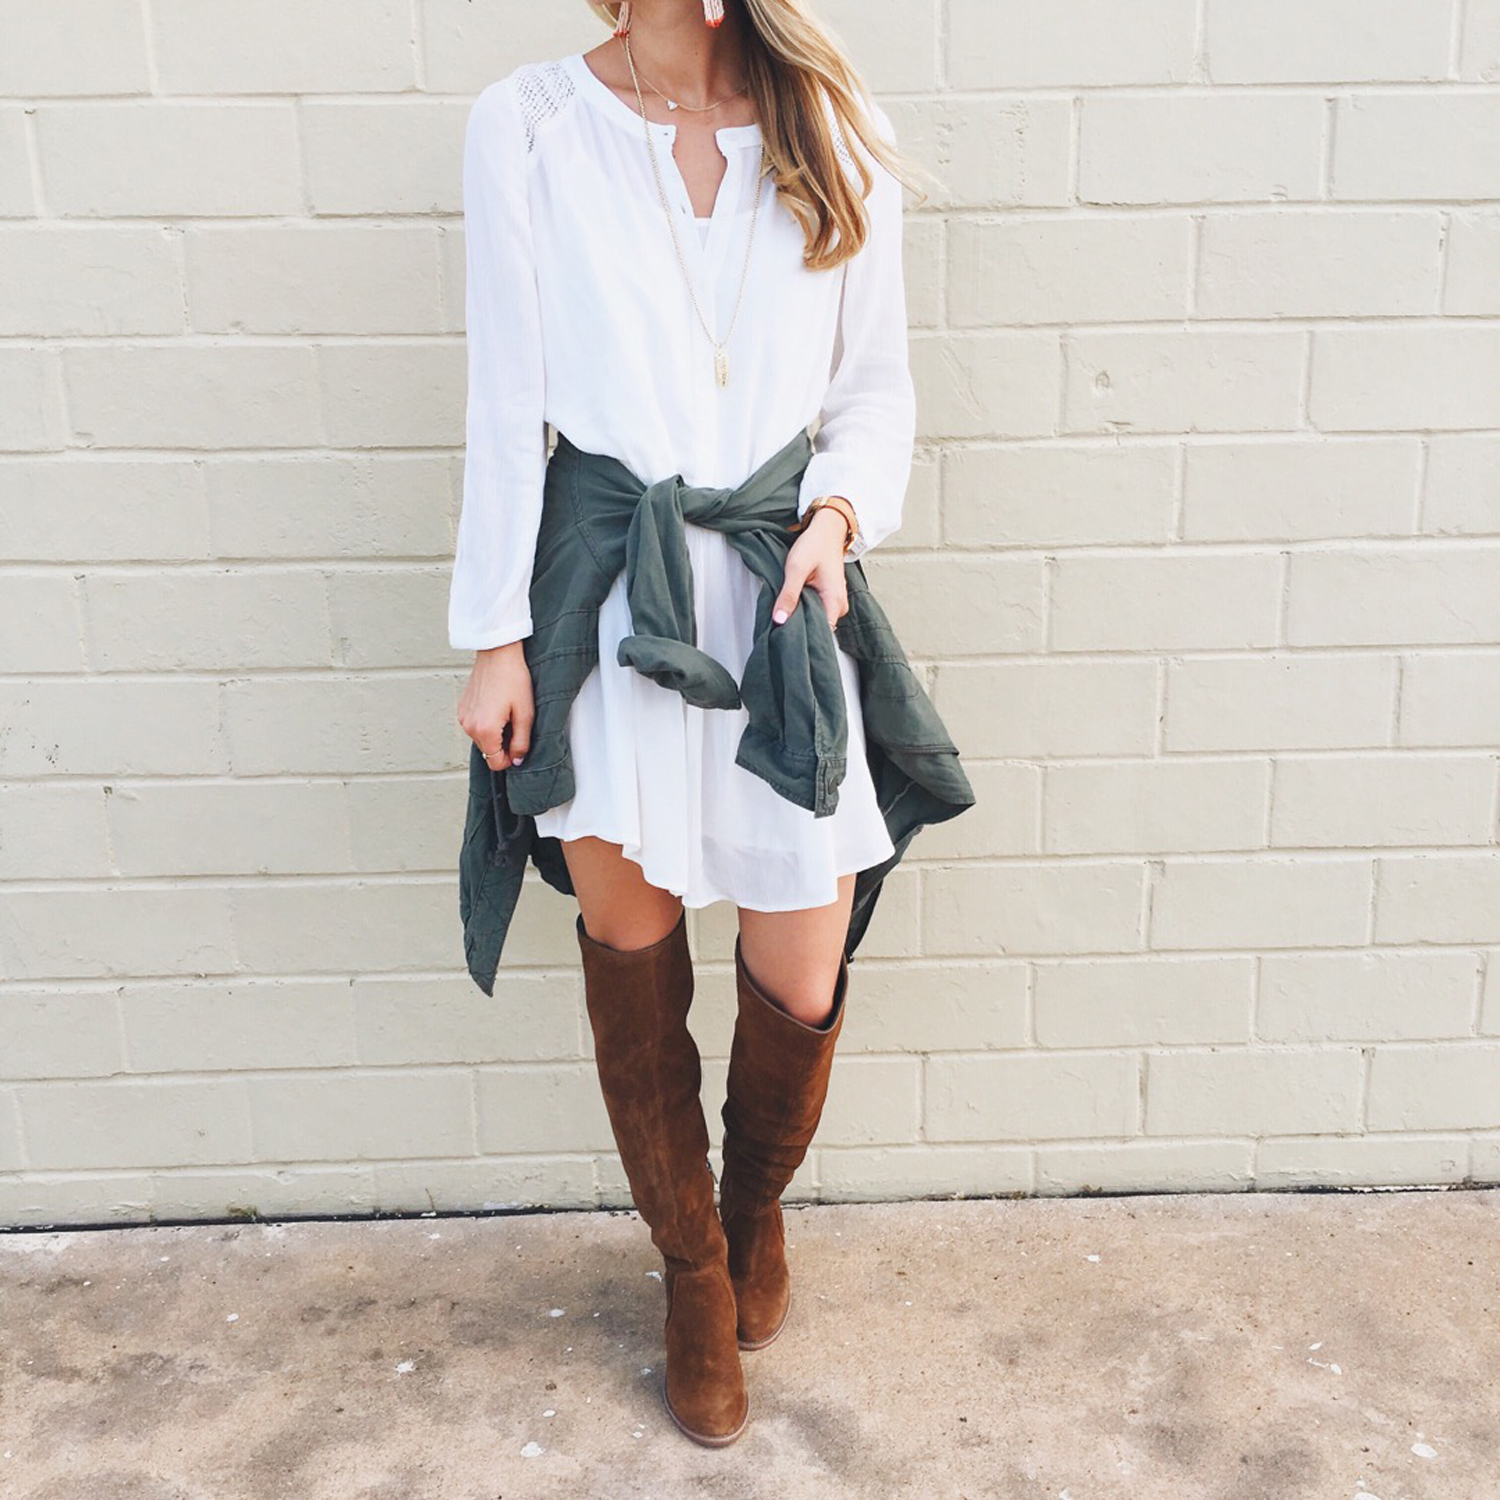 livvyland-blog-olivia-watson-nordstrom-anniversary-sale-hinge-drop-waist-white-dress-utility-jacket-over-the-knee-boots-fall-outfit